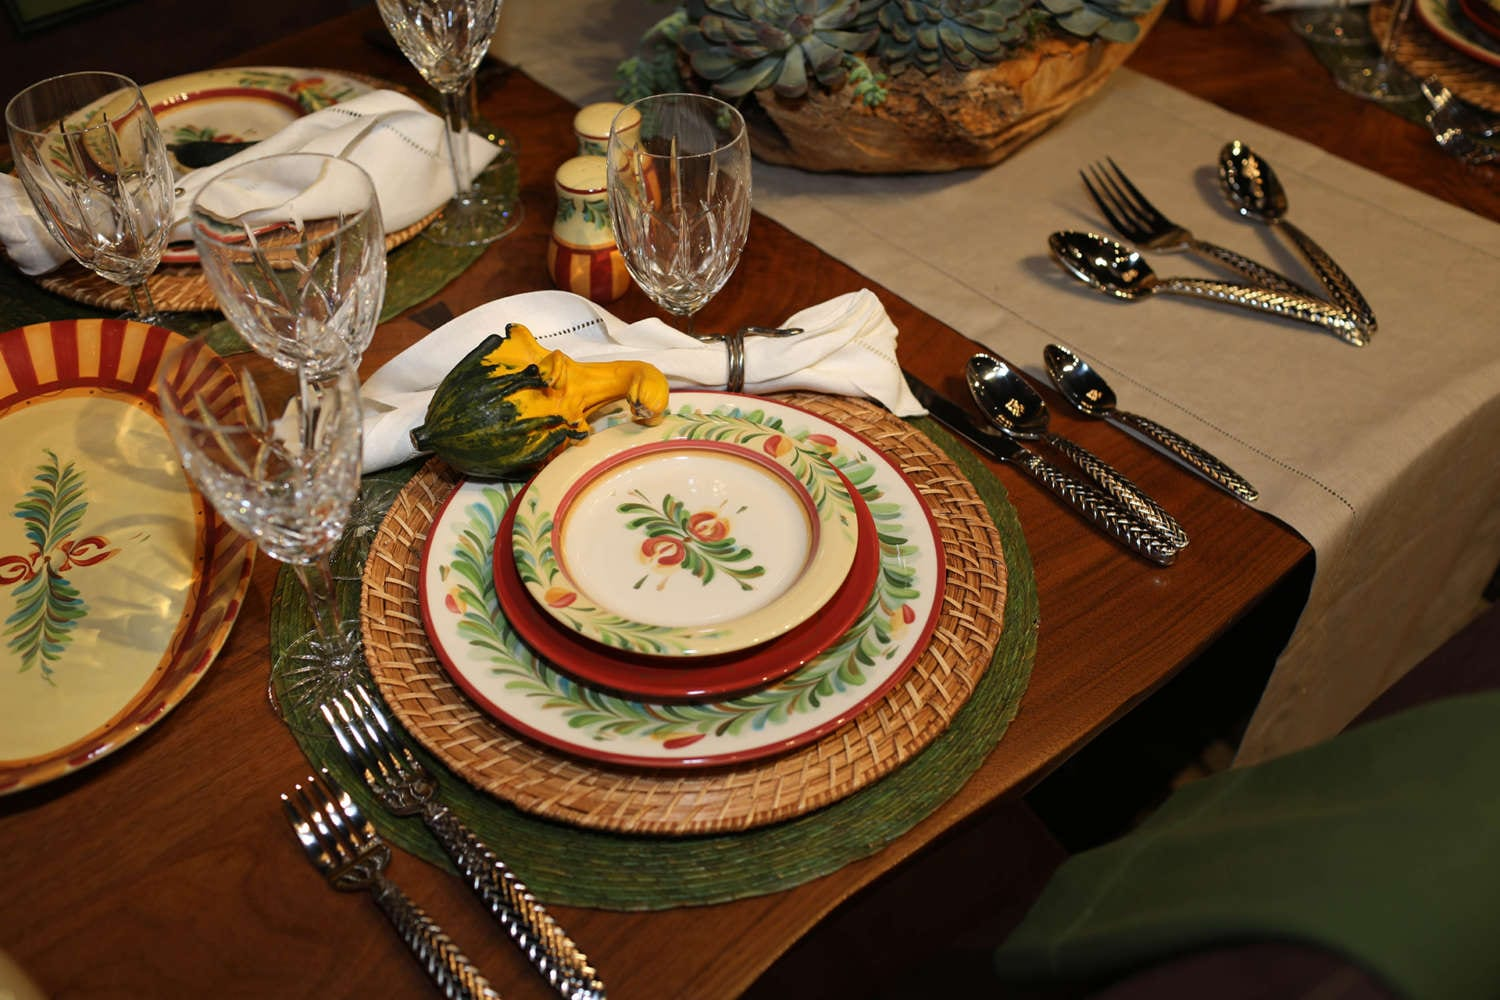 Fall gourd and rustic china place settings at Art of The Table.